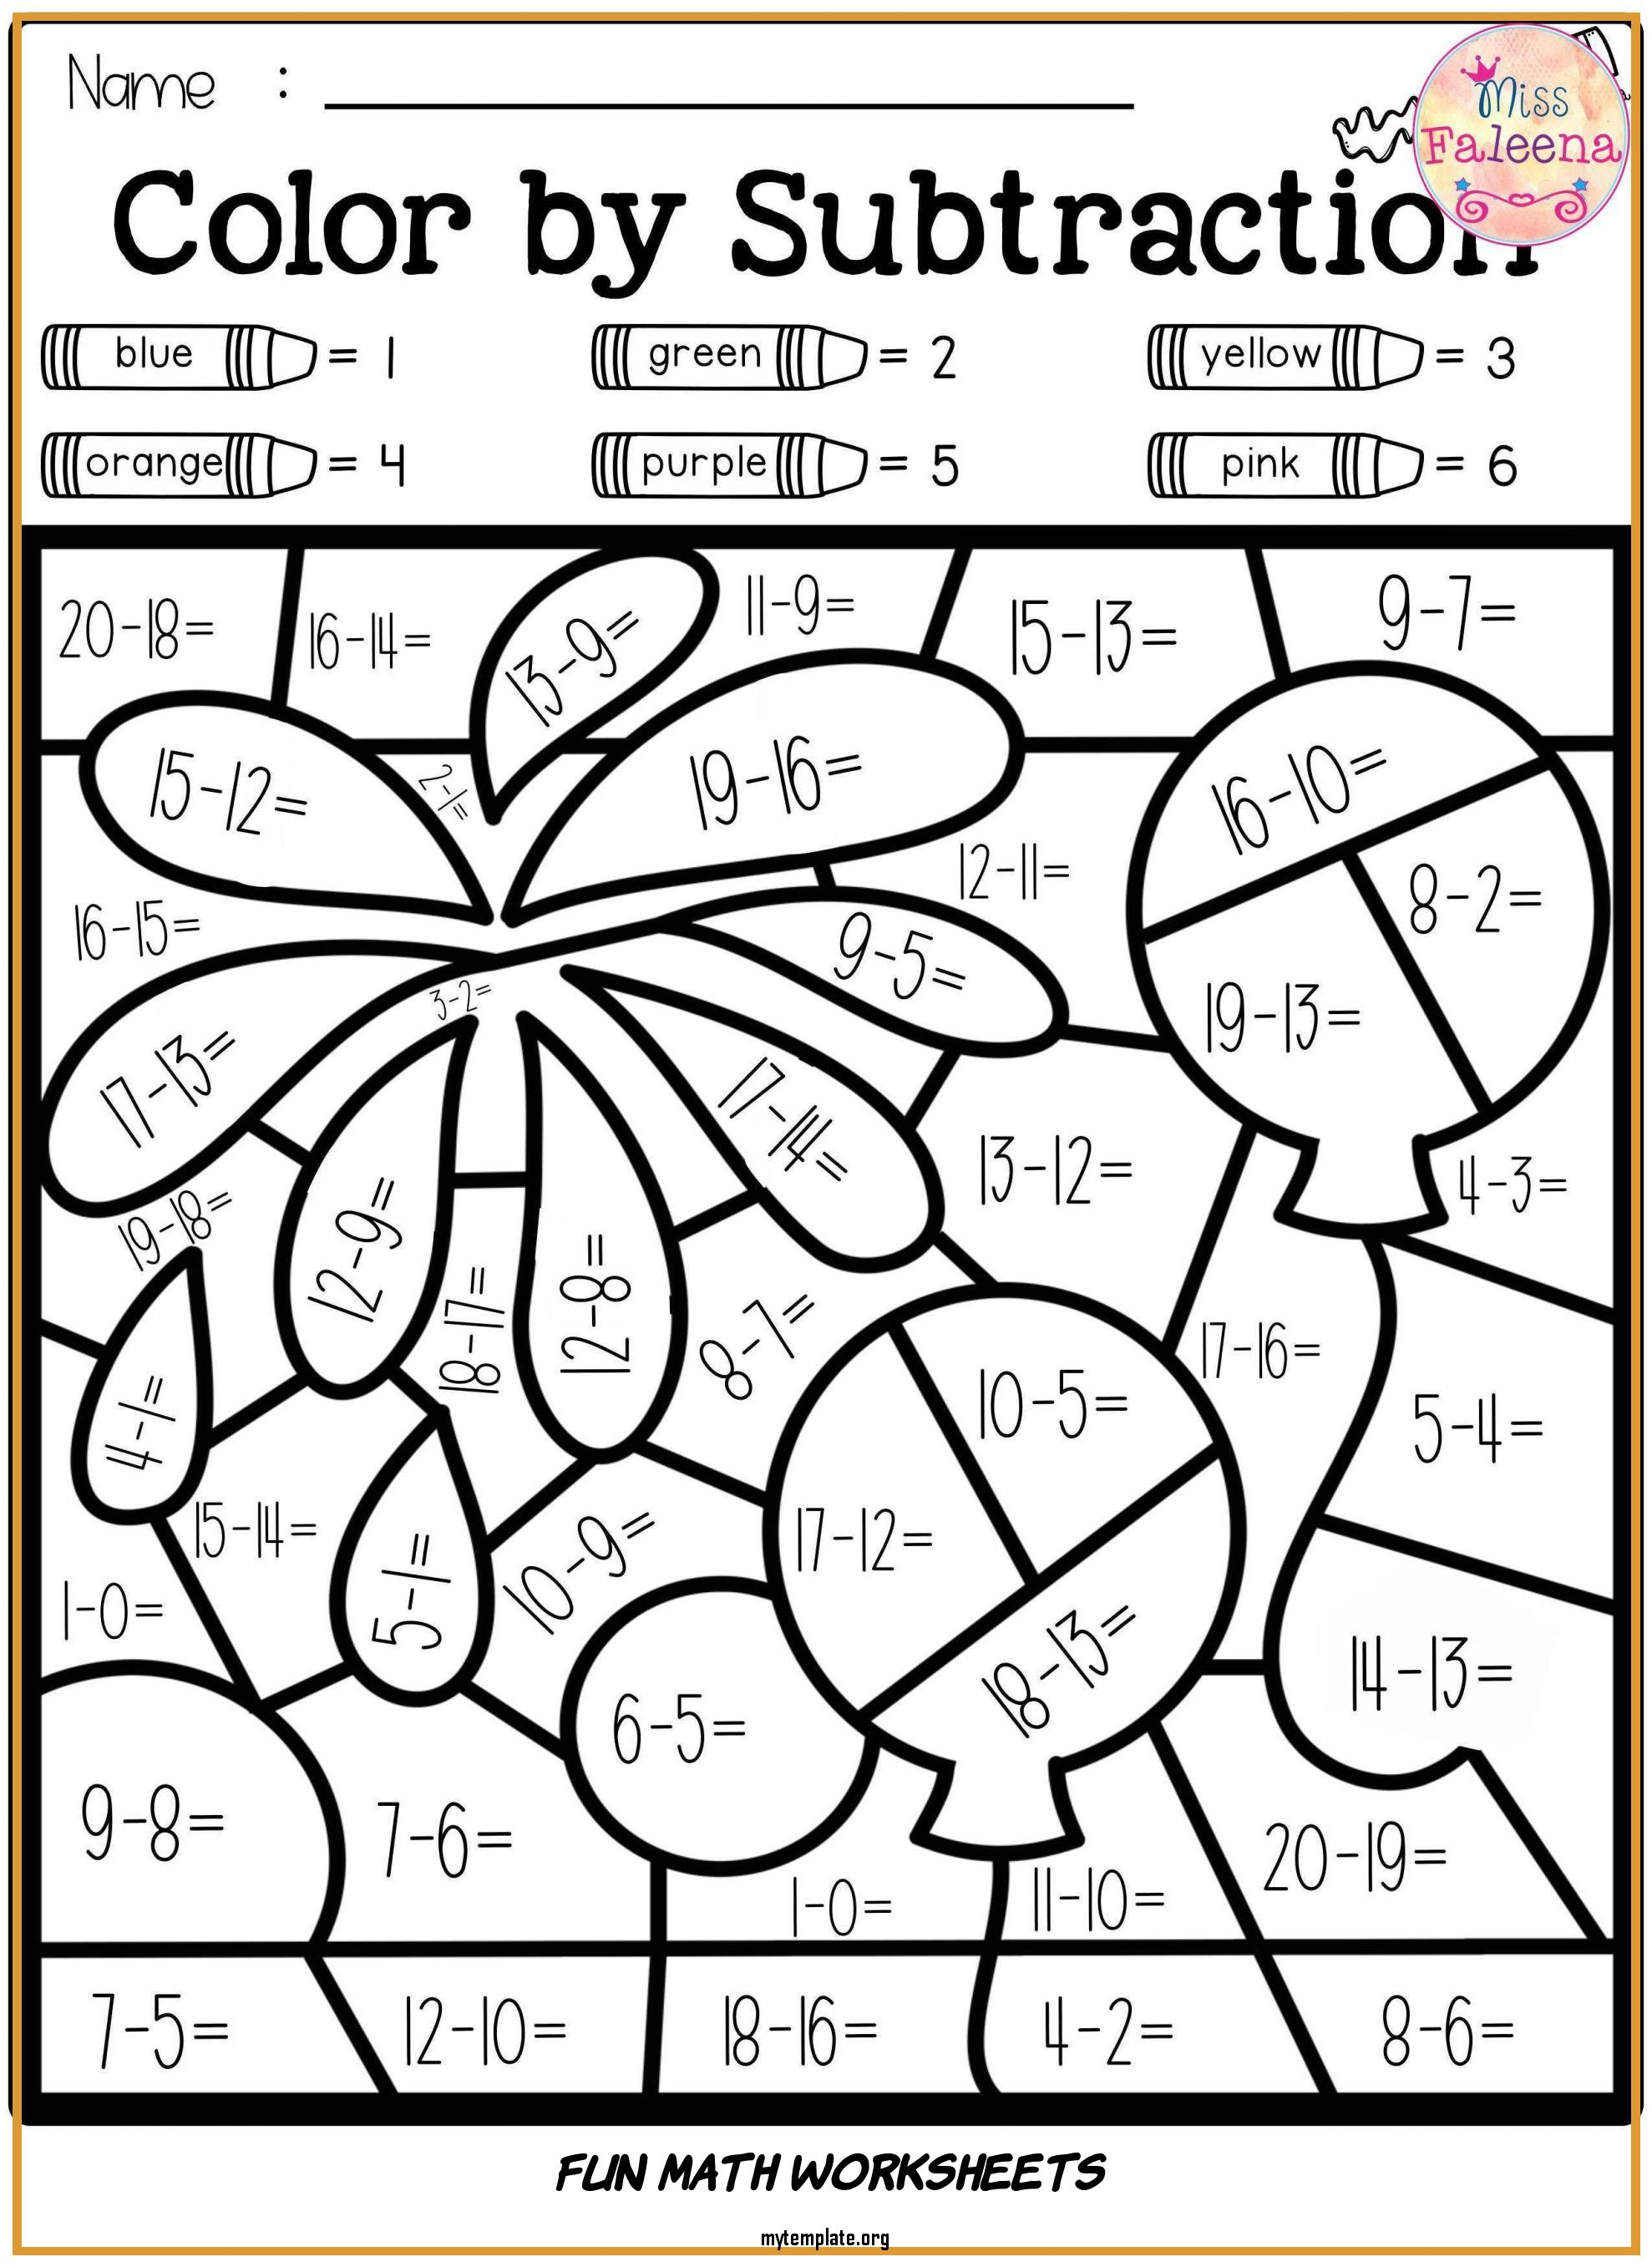 small resolution of 7 Fun Math Worksheets - Free Templates